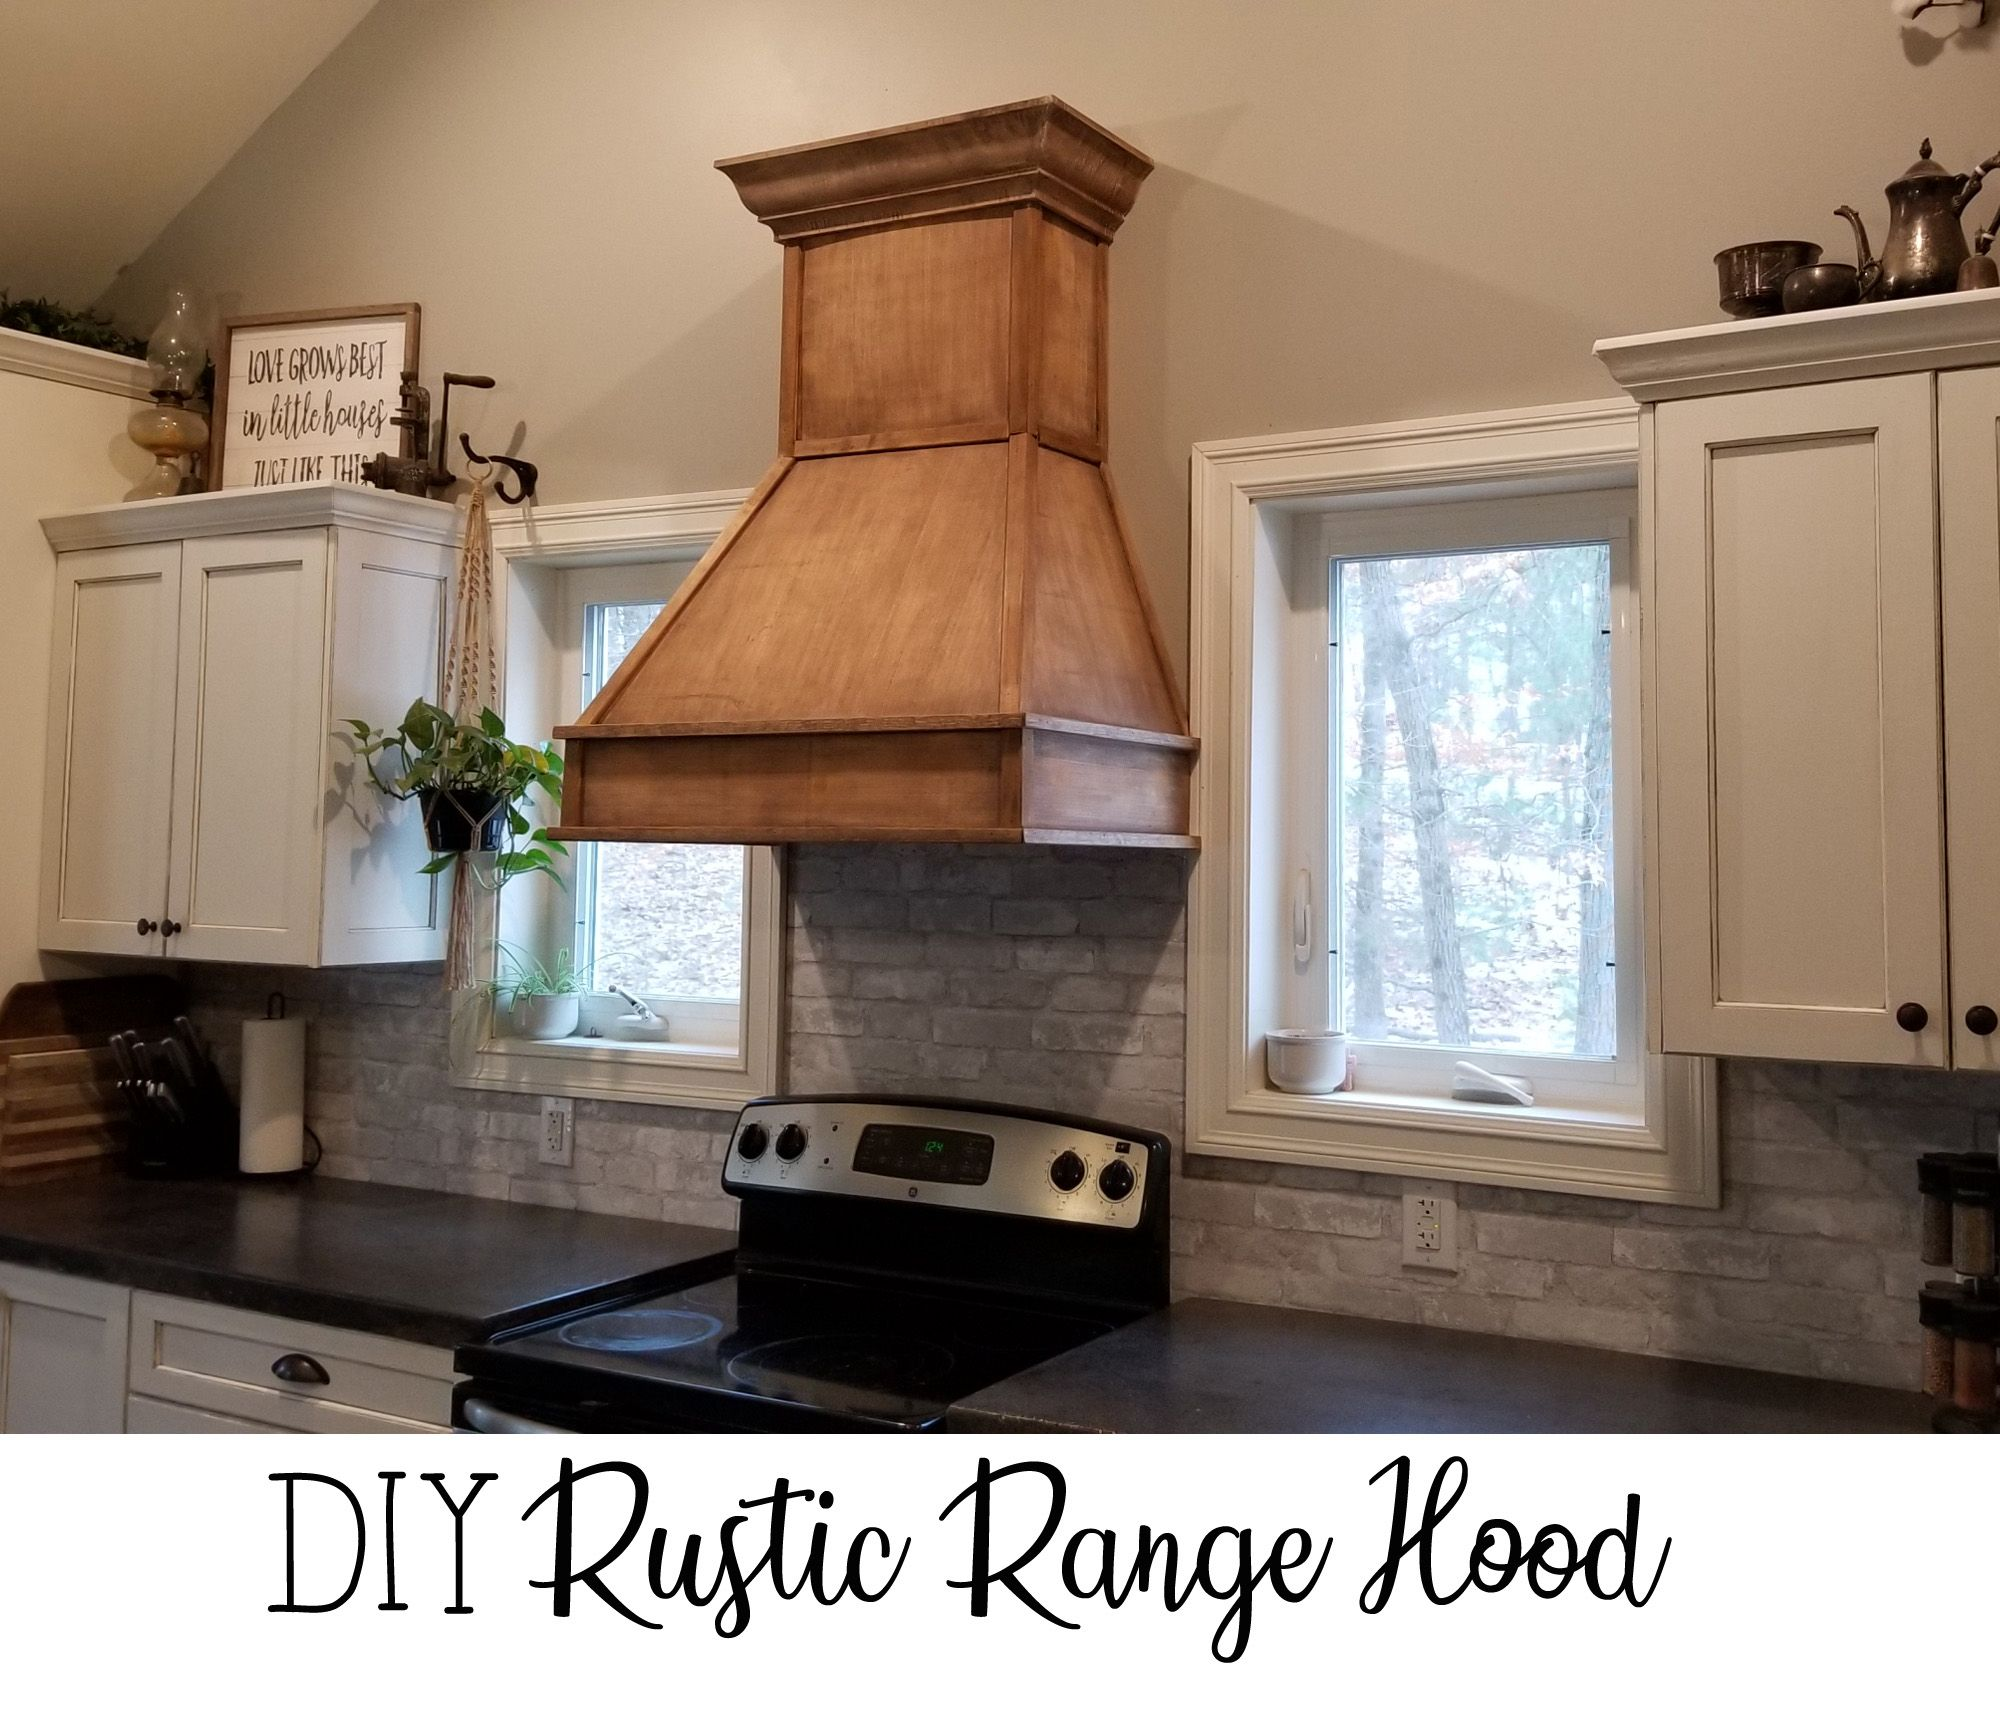 How To Diy Your Own Vent Hood Rustic Range Hood For Farmhouse